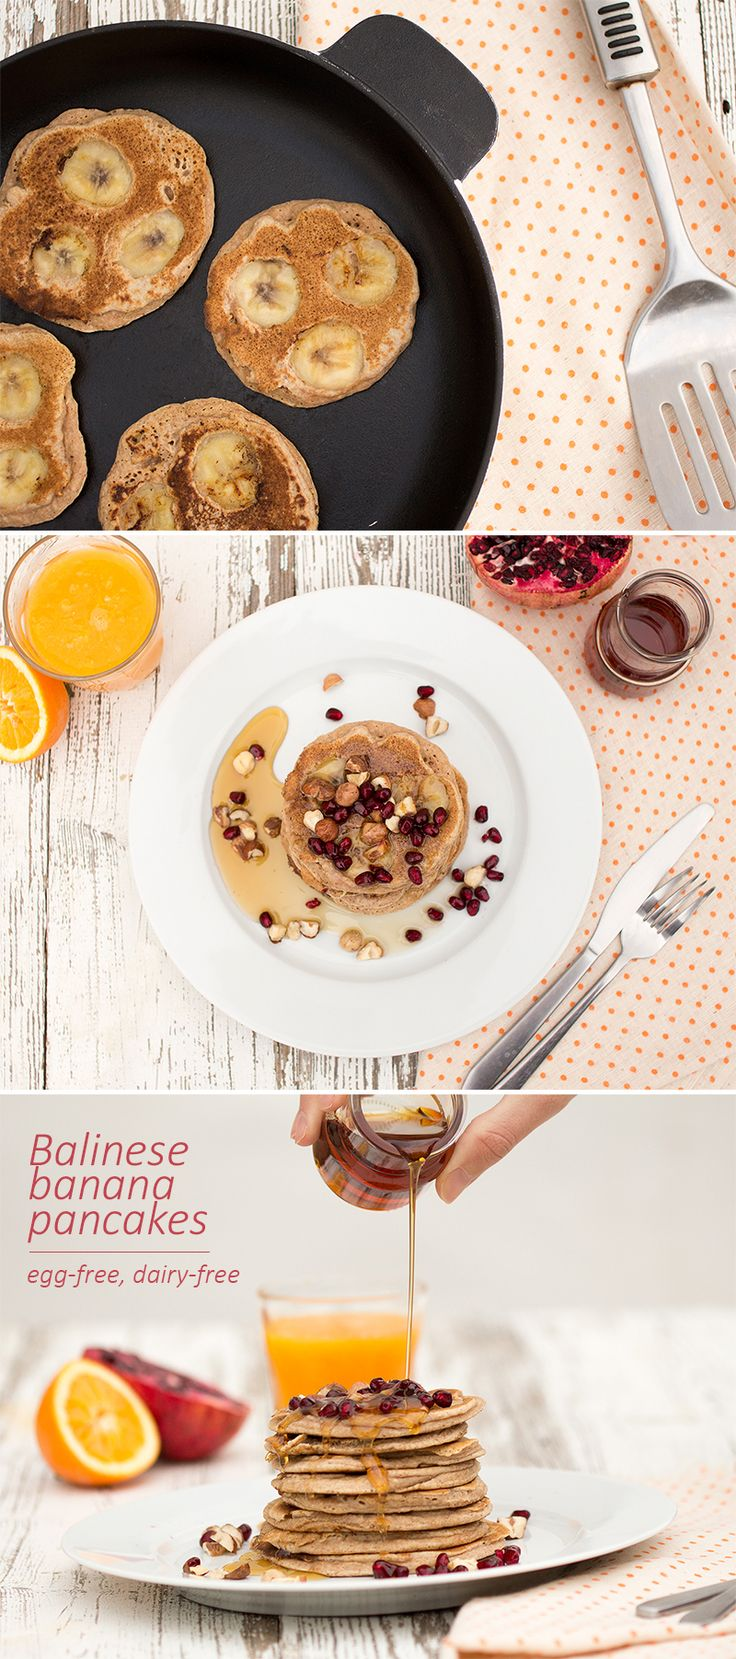 Pillow-soft, slightly sweet pancakes with whole banana slices. Egg and dairy free. #vegan #recipes #breakfast